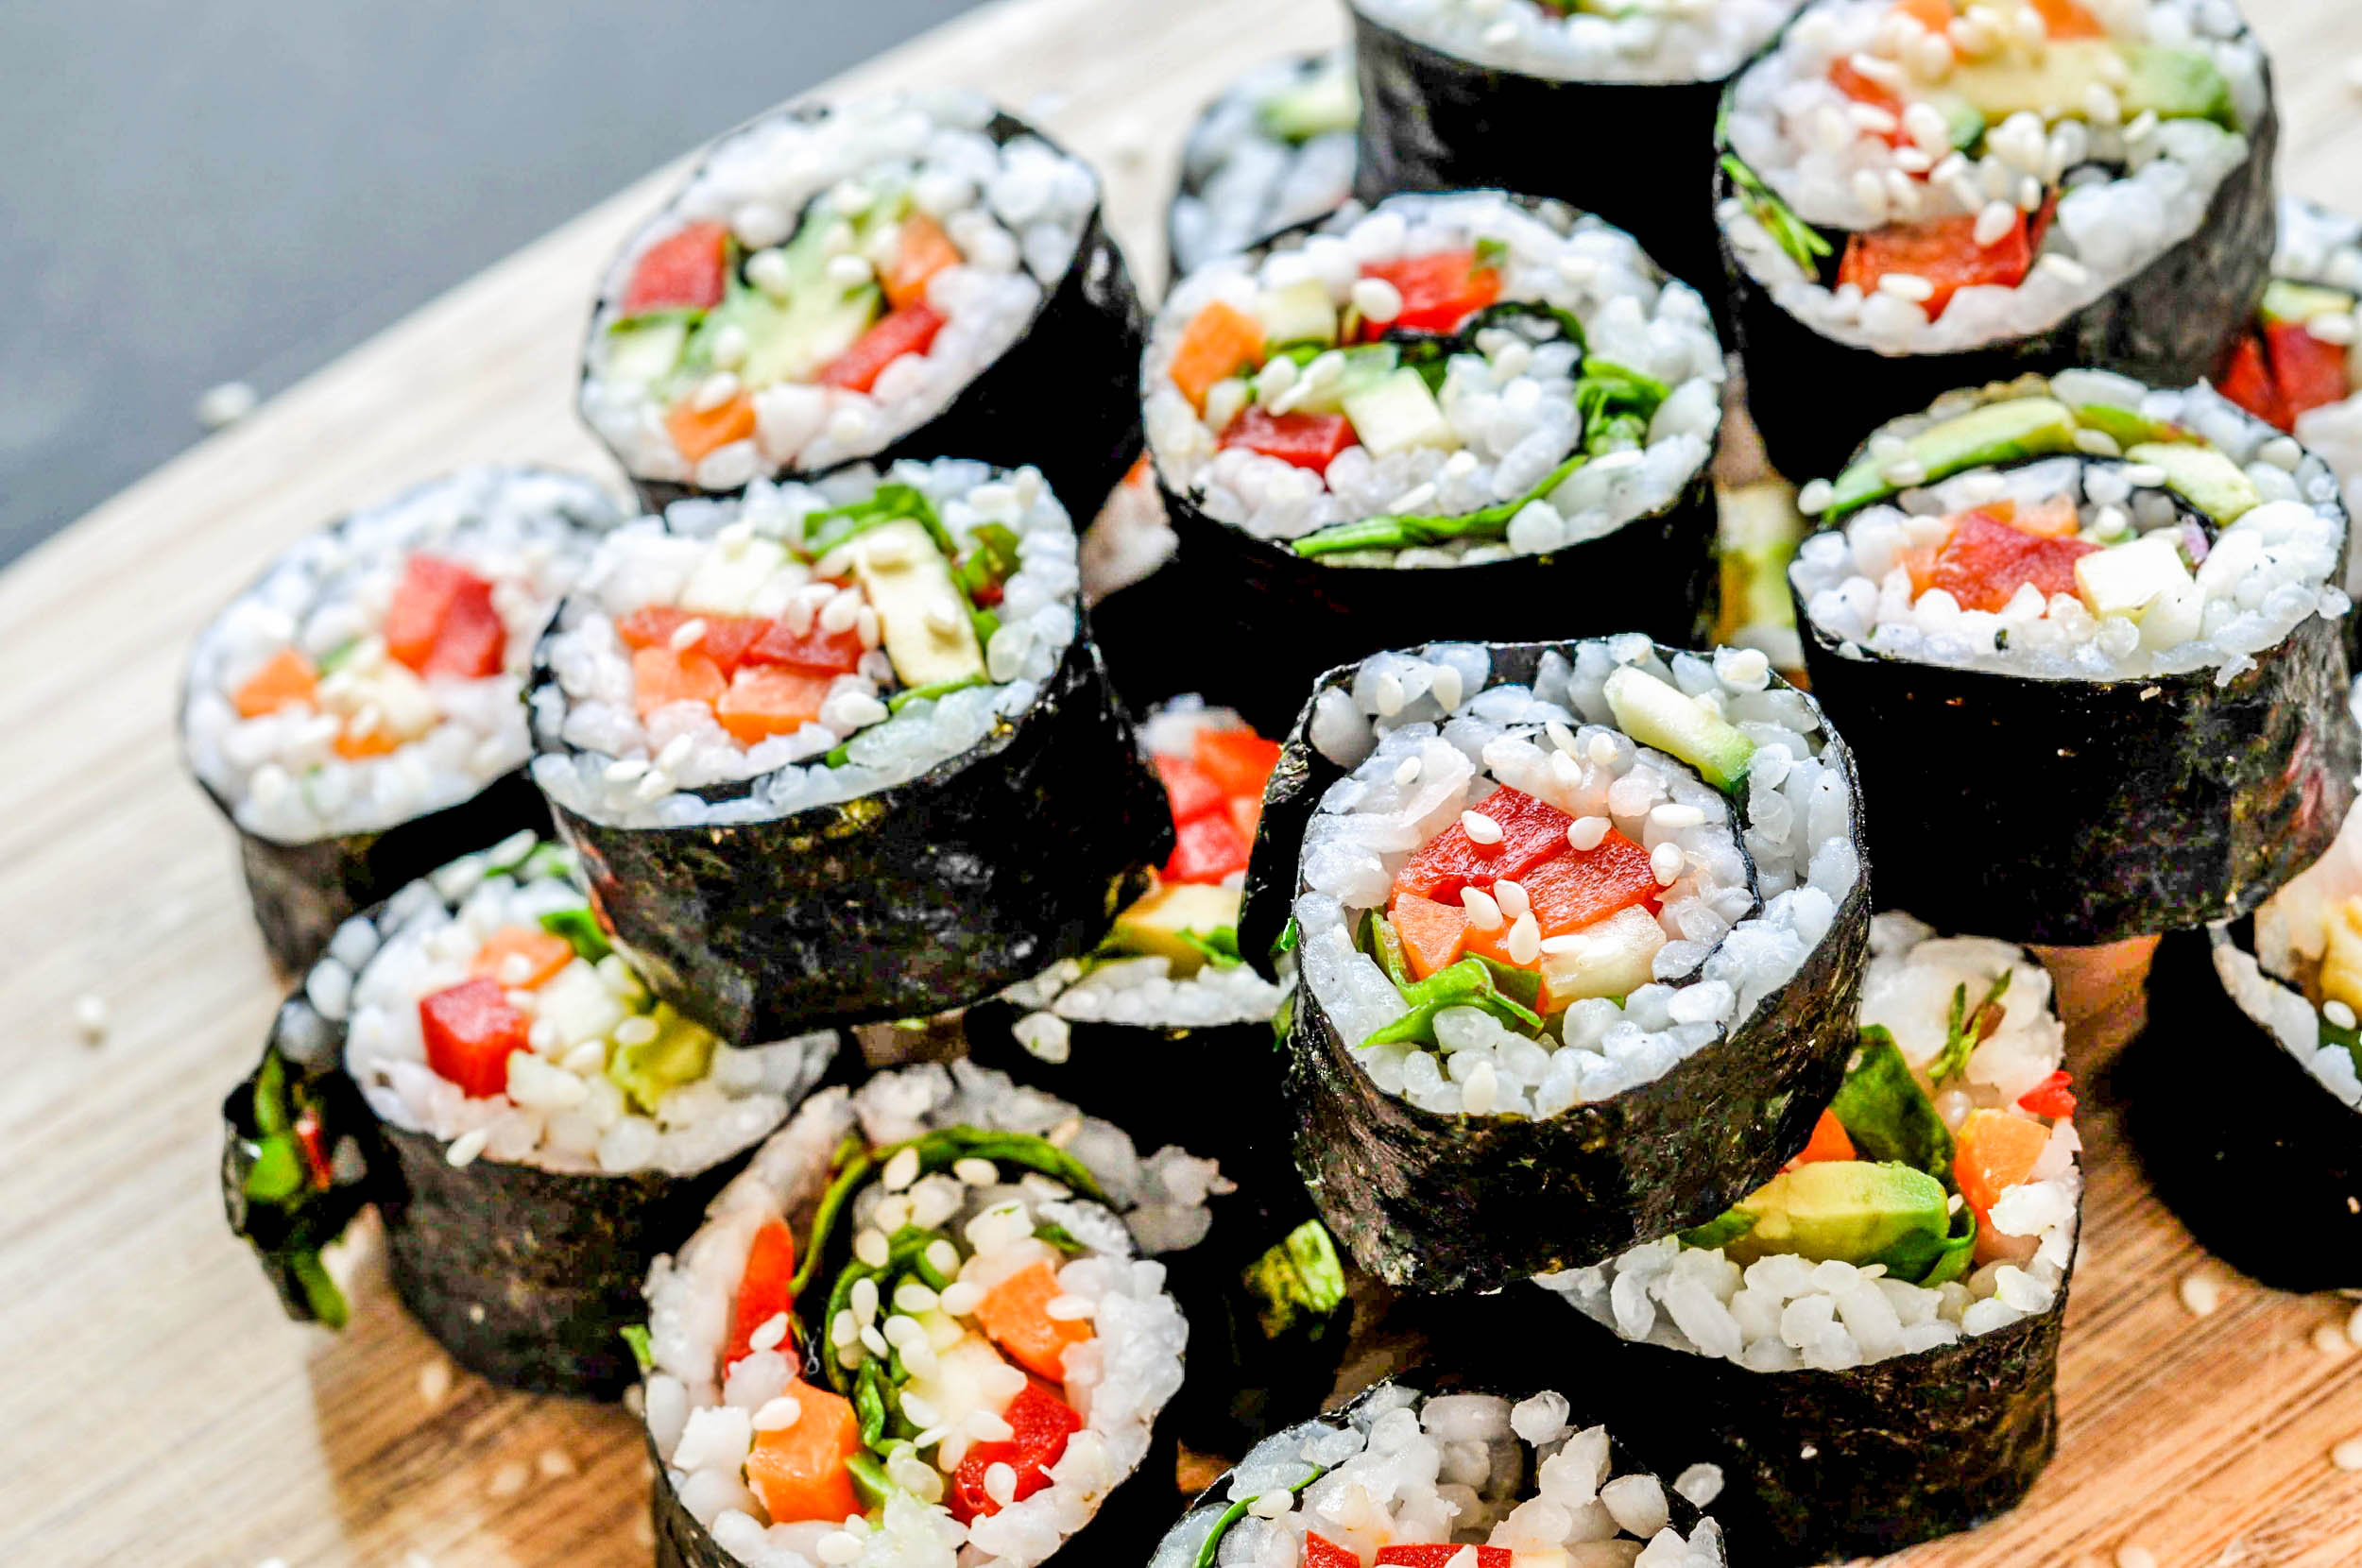 This easy vegan sushi recipe can be pulled together in less than 30 minutes. It's delicious, healthy, and easy to make.